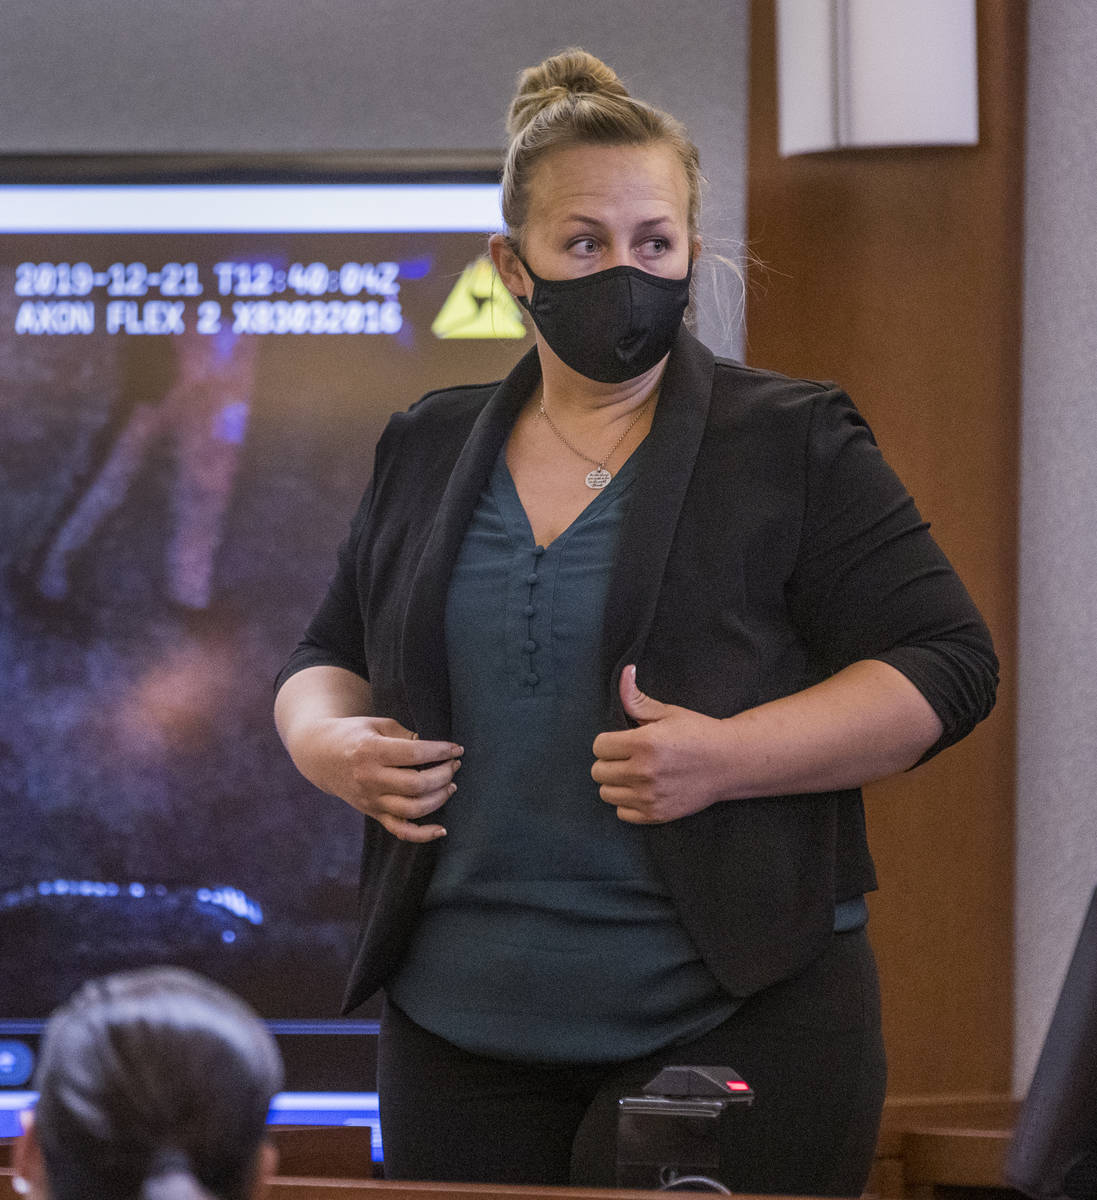 Senior Crime Scene Analyst Noelle Herring with Metro police prepares to answer questions as a w ...